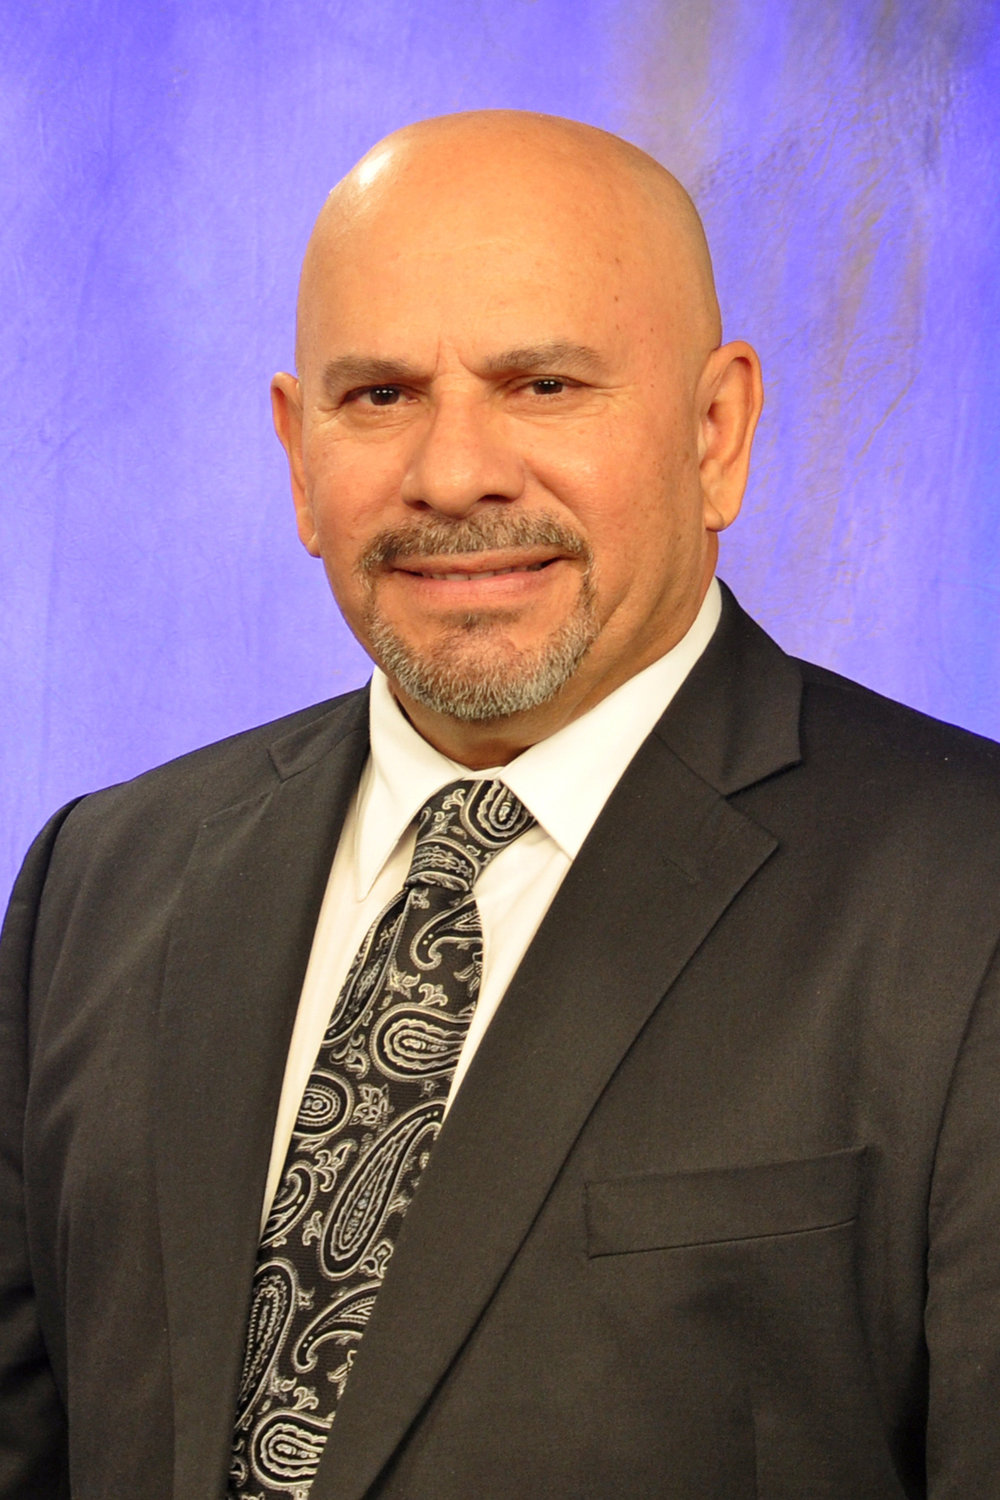 Carlos S. Morán |  Director of Hispanic Ministries